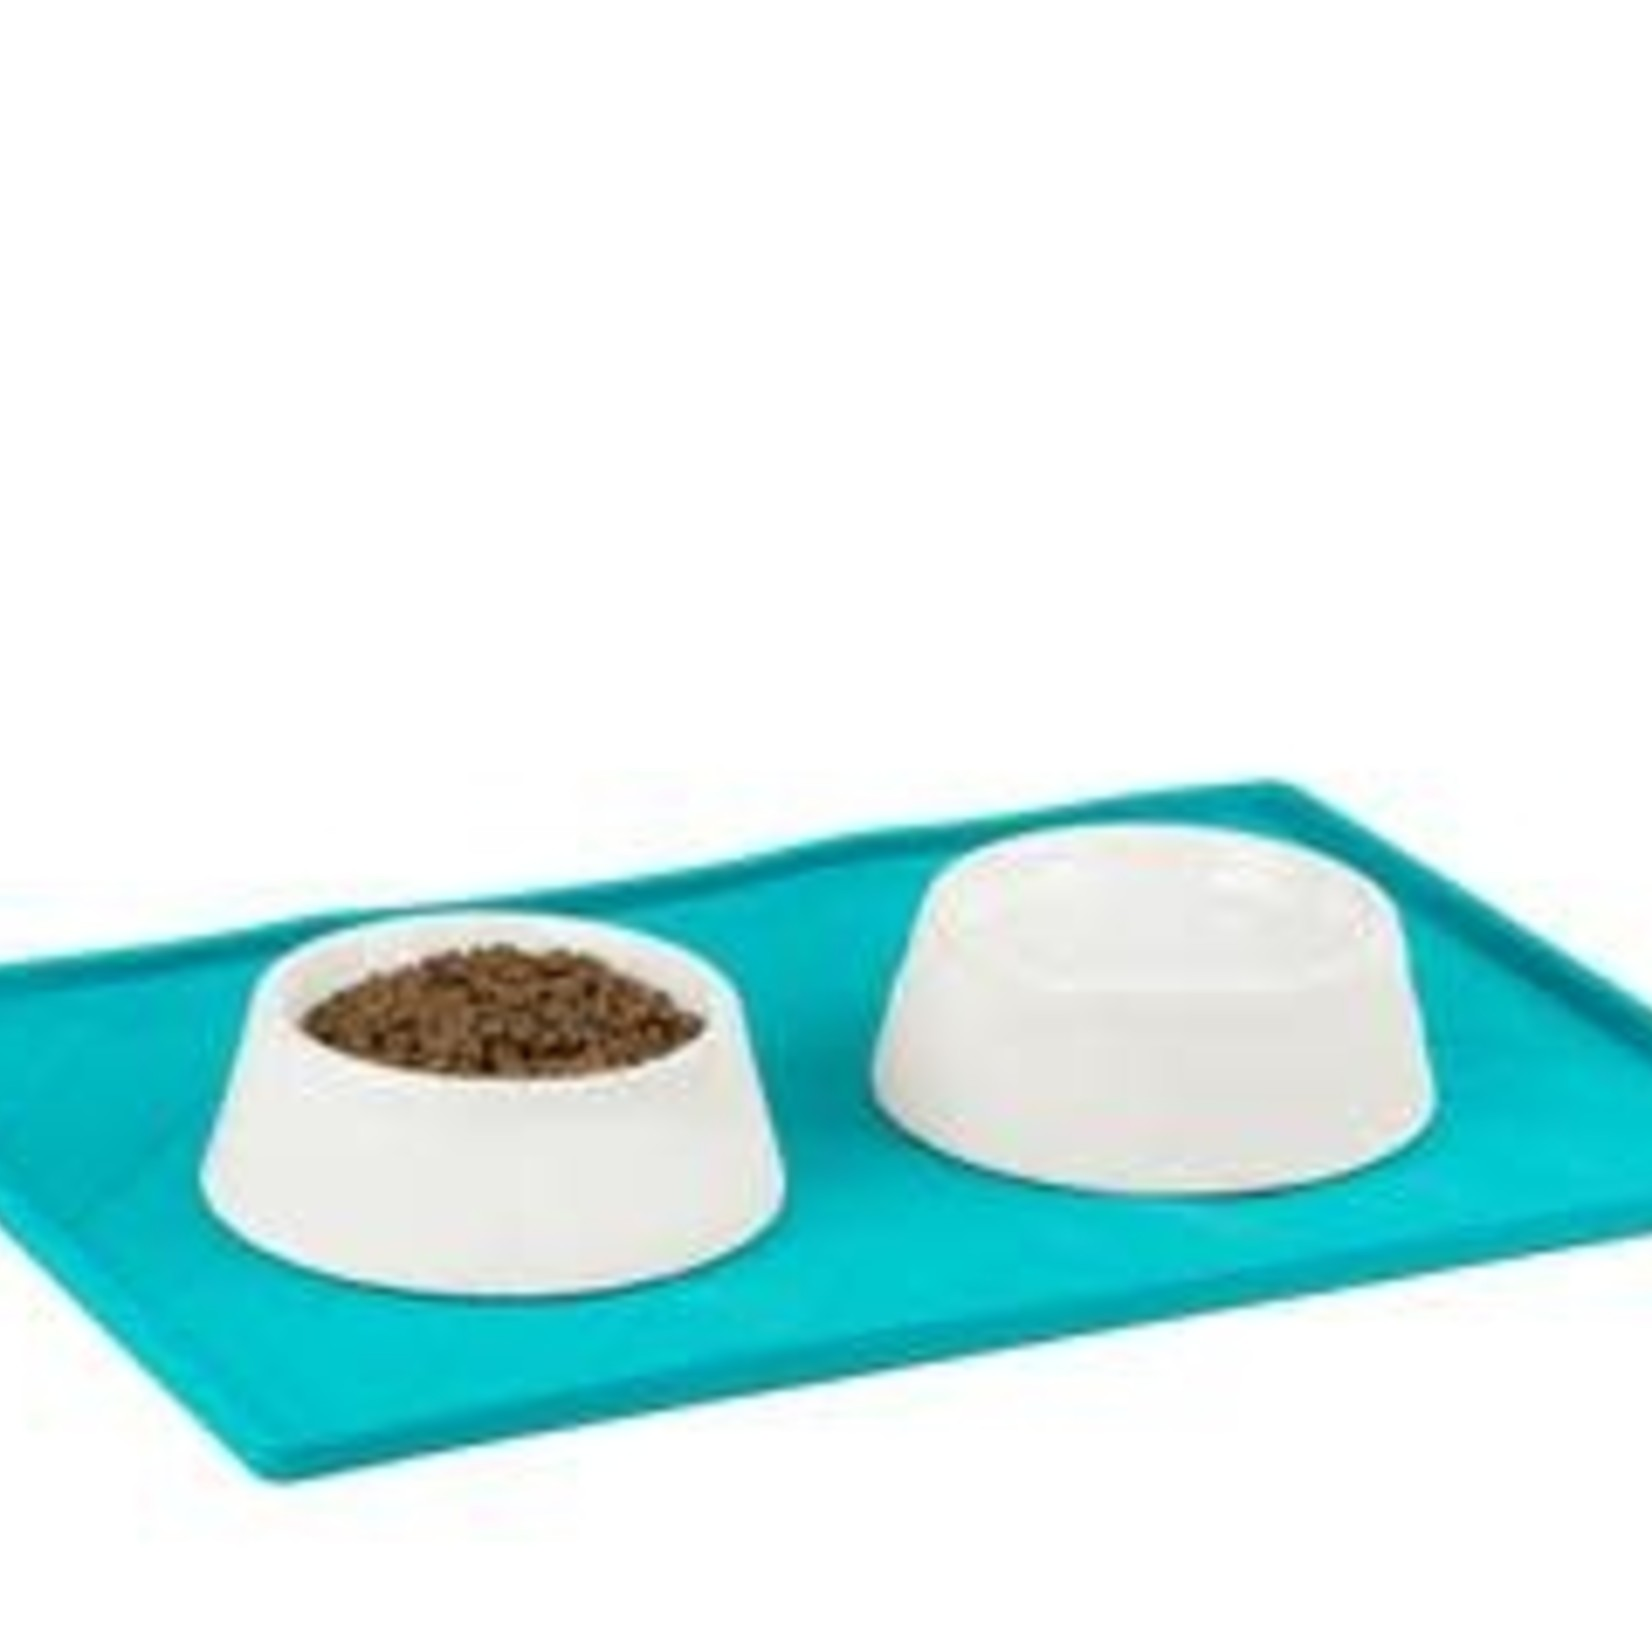 Messy Mutts Messy Mutts Silicone Food Mat Large Blue